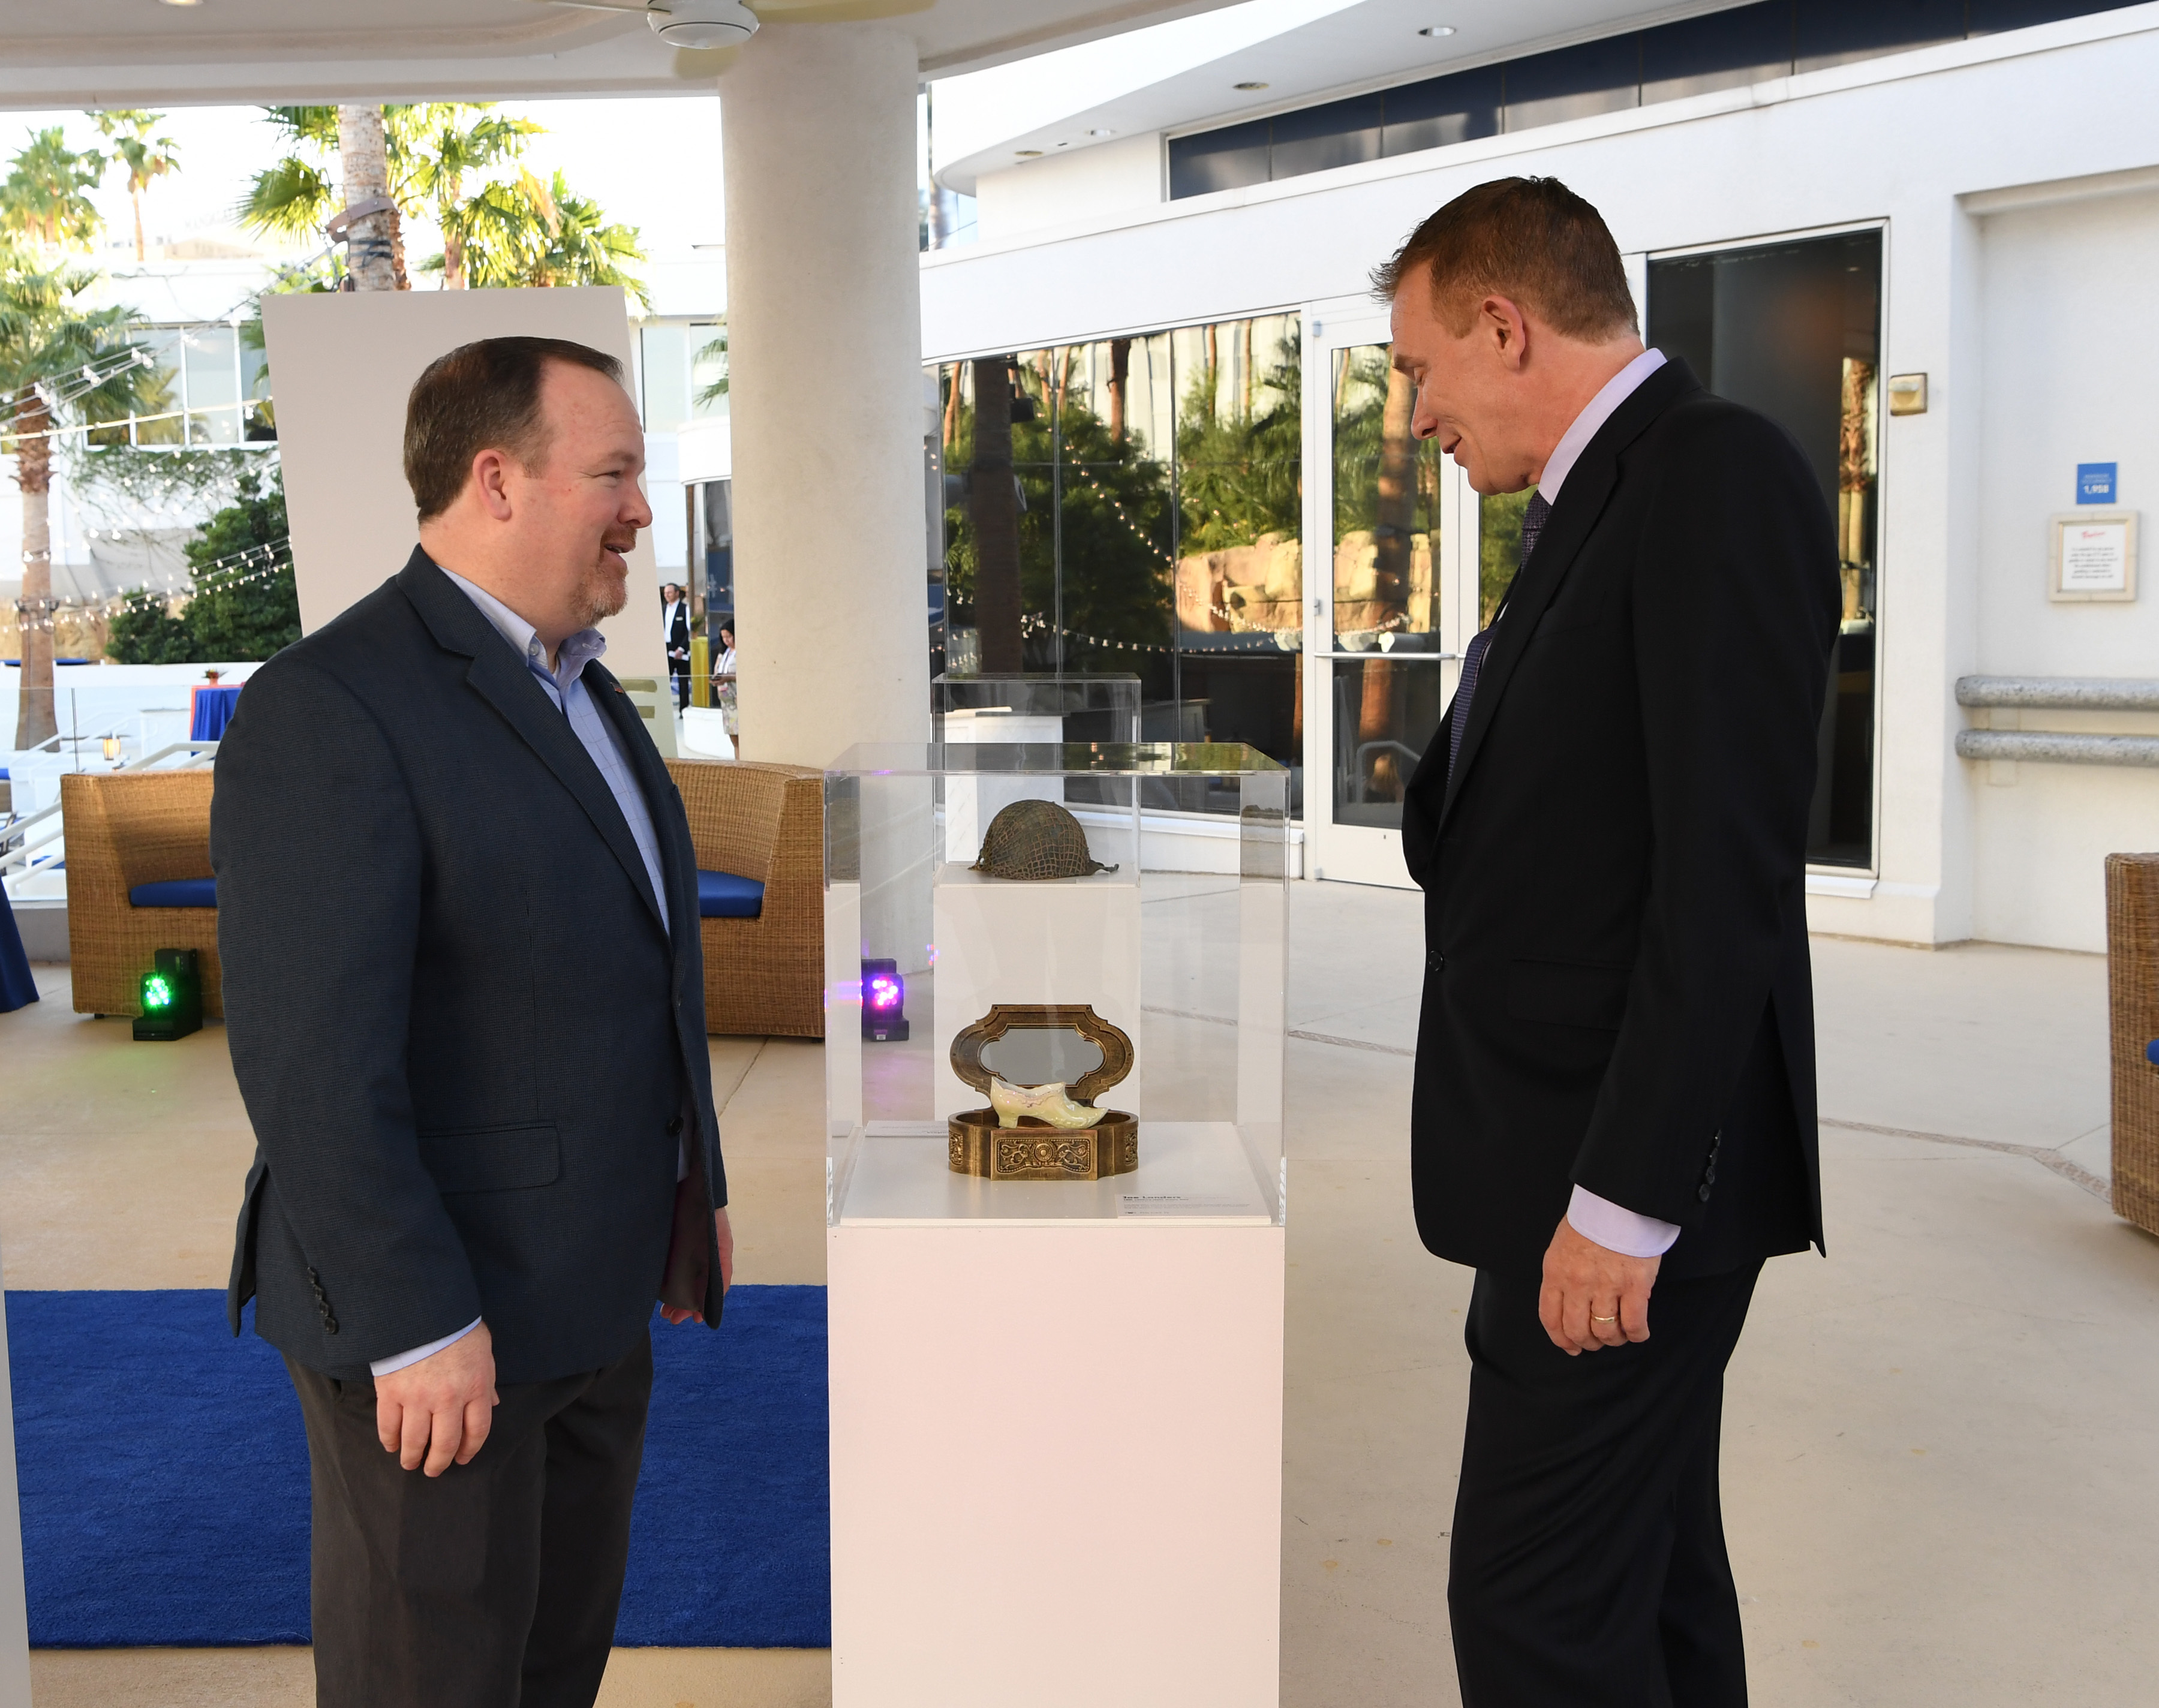 Hilton vice president of marketing Andrew Flack discusses WowMakers initiative with honoree Joe Landers at the Hilton Museum of Wow exhibit on Oct. 18, 2016 at the Hilton Tropicana Hotel in Las Vegas. (Denise Truscello /Getty Images for Hilton)